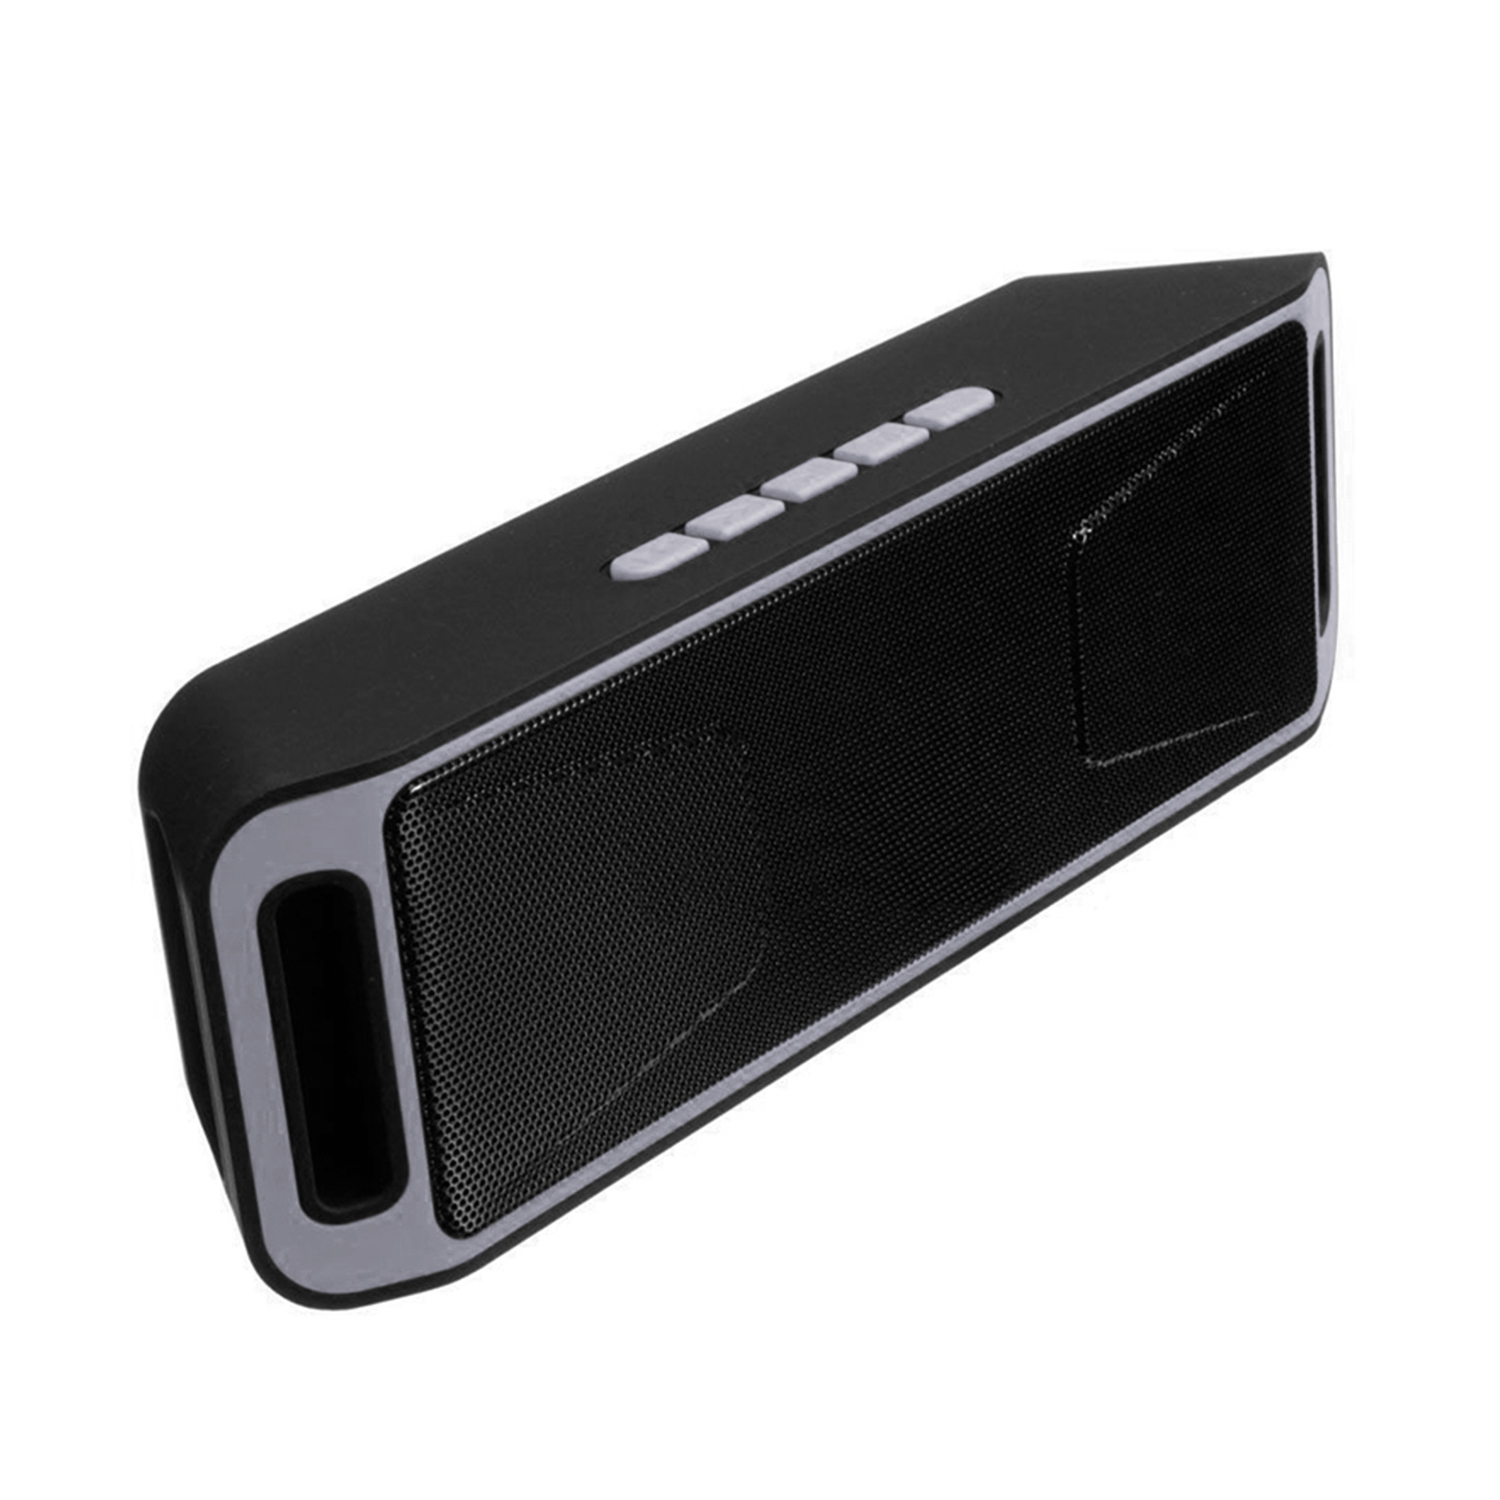 SC208 Wireless Boombox Stereo Bluetooth Speaker Portable For iPhone Samsung Tablet PC Stereo